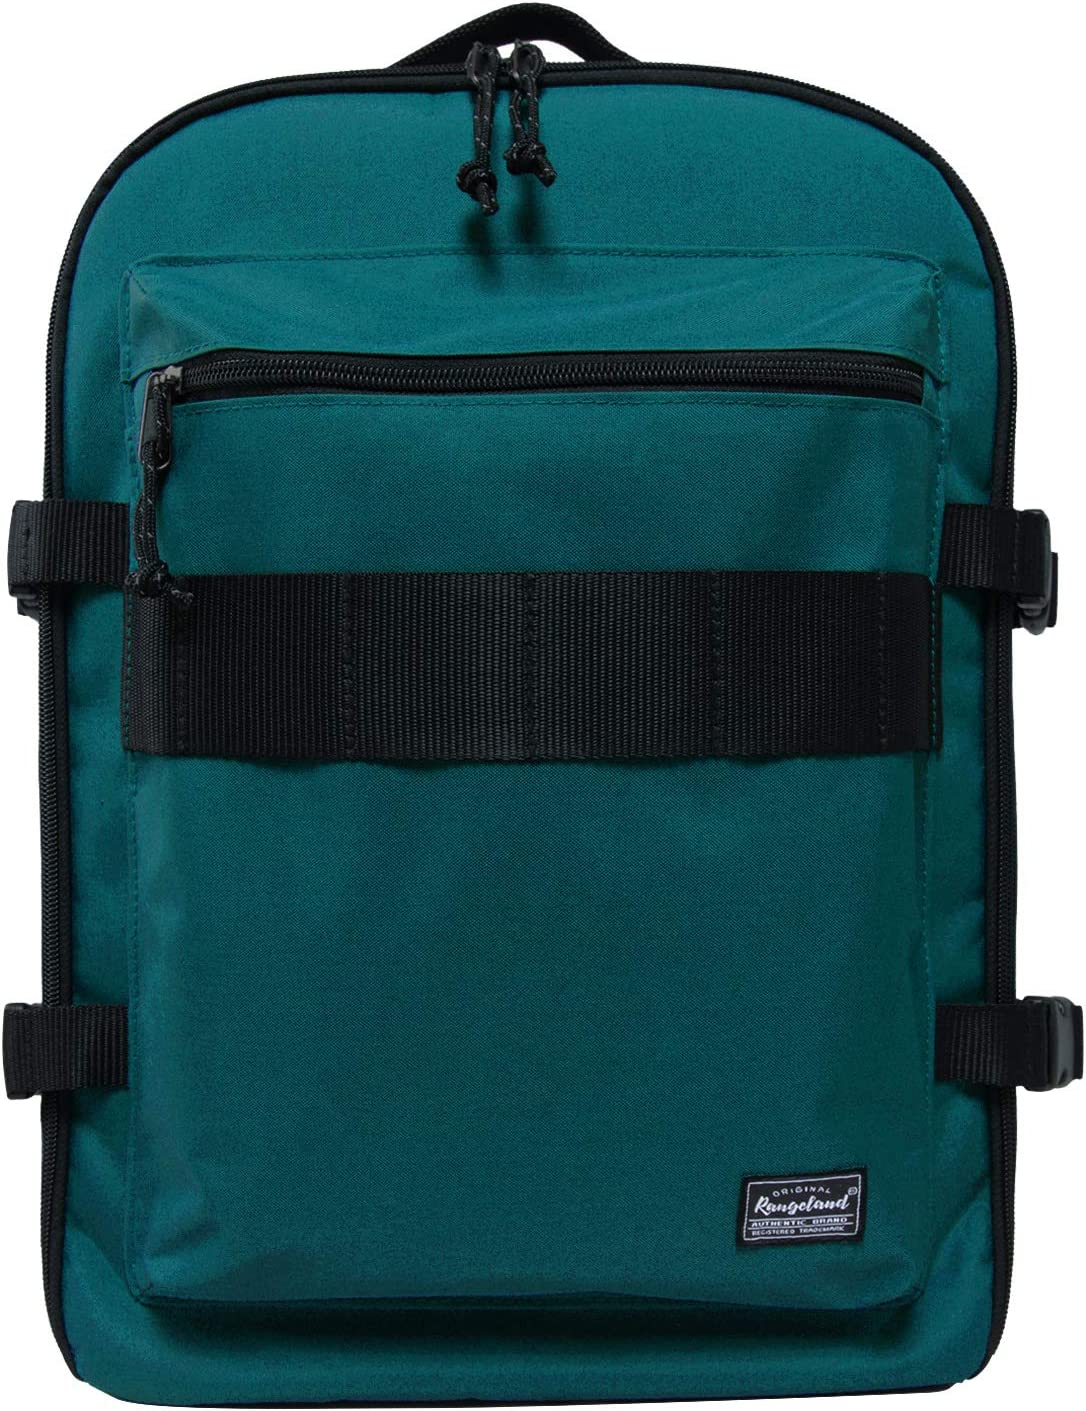 Rangeland Underseat Backpack for Airlines Unisex Weekender Backpack with laptop pocket 17L Lightweight Baggage for Gym Commute Day Trip, Bluish Green